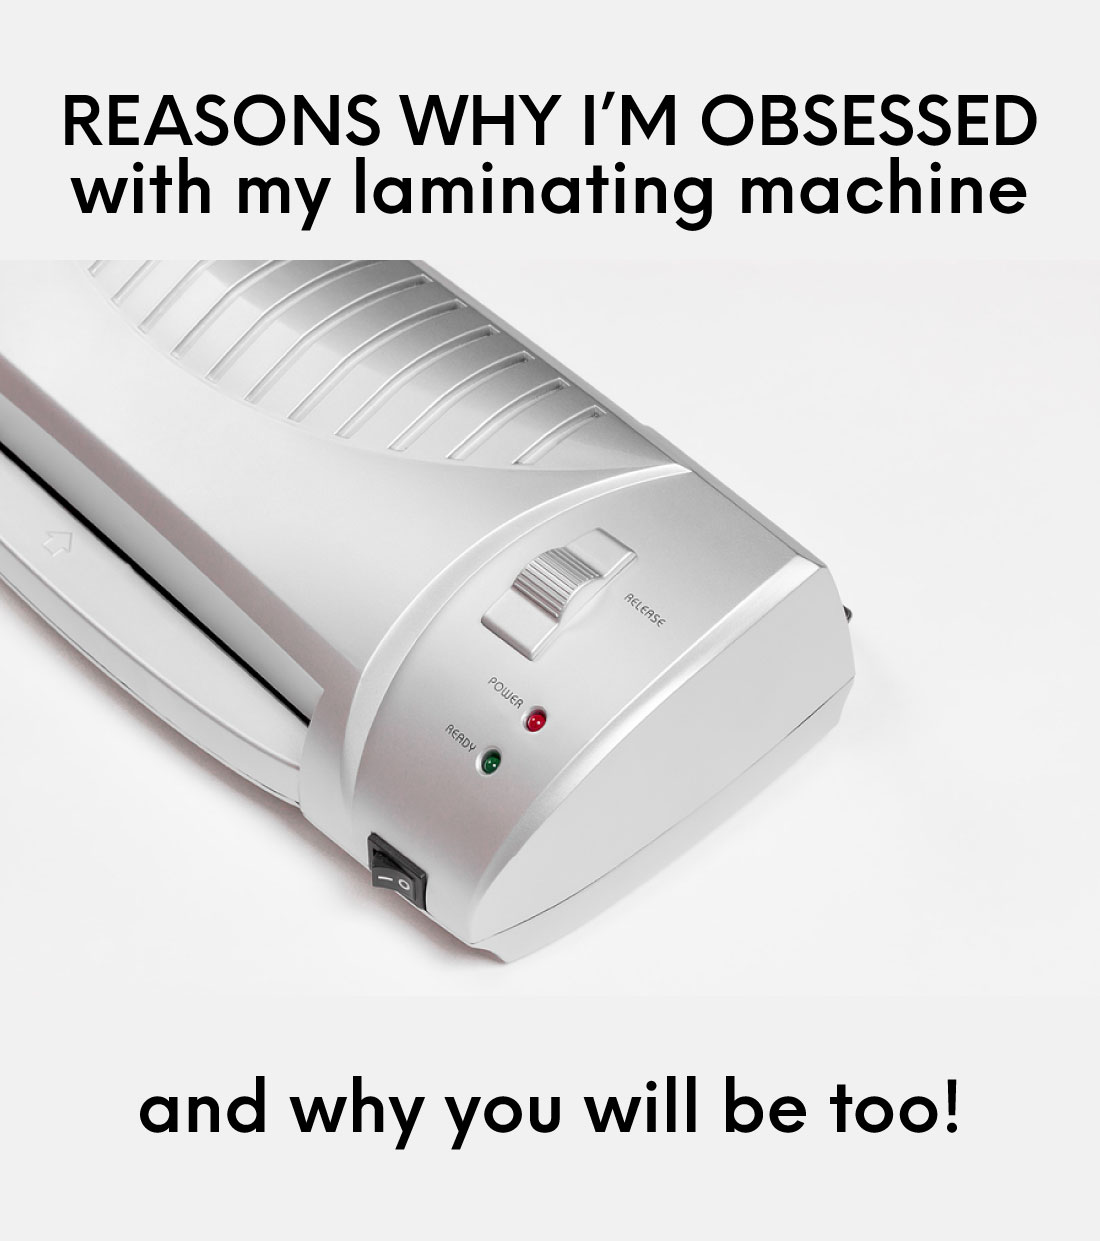 Reasons why I'm obsessed with my laminating machine - and why you will be too!